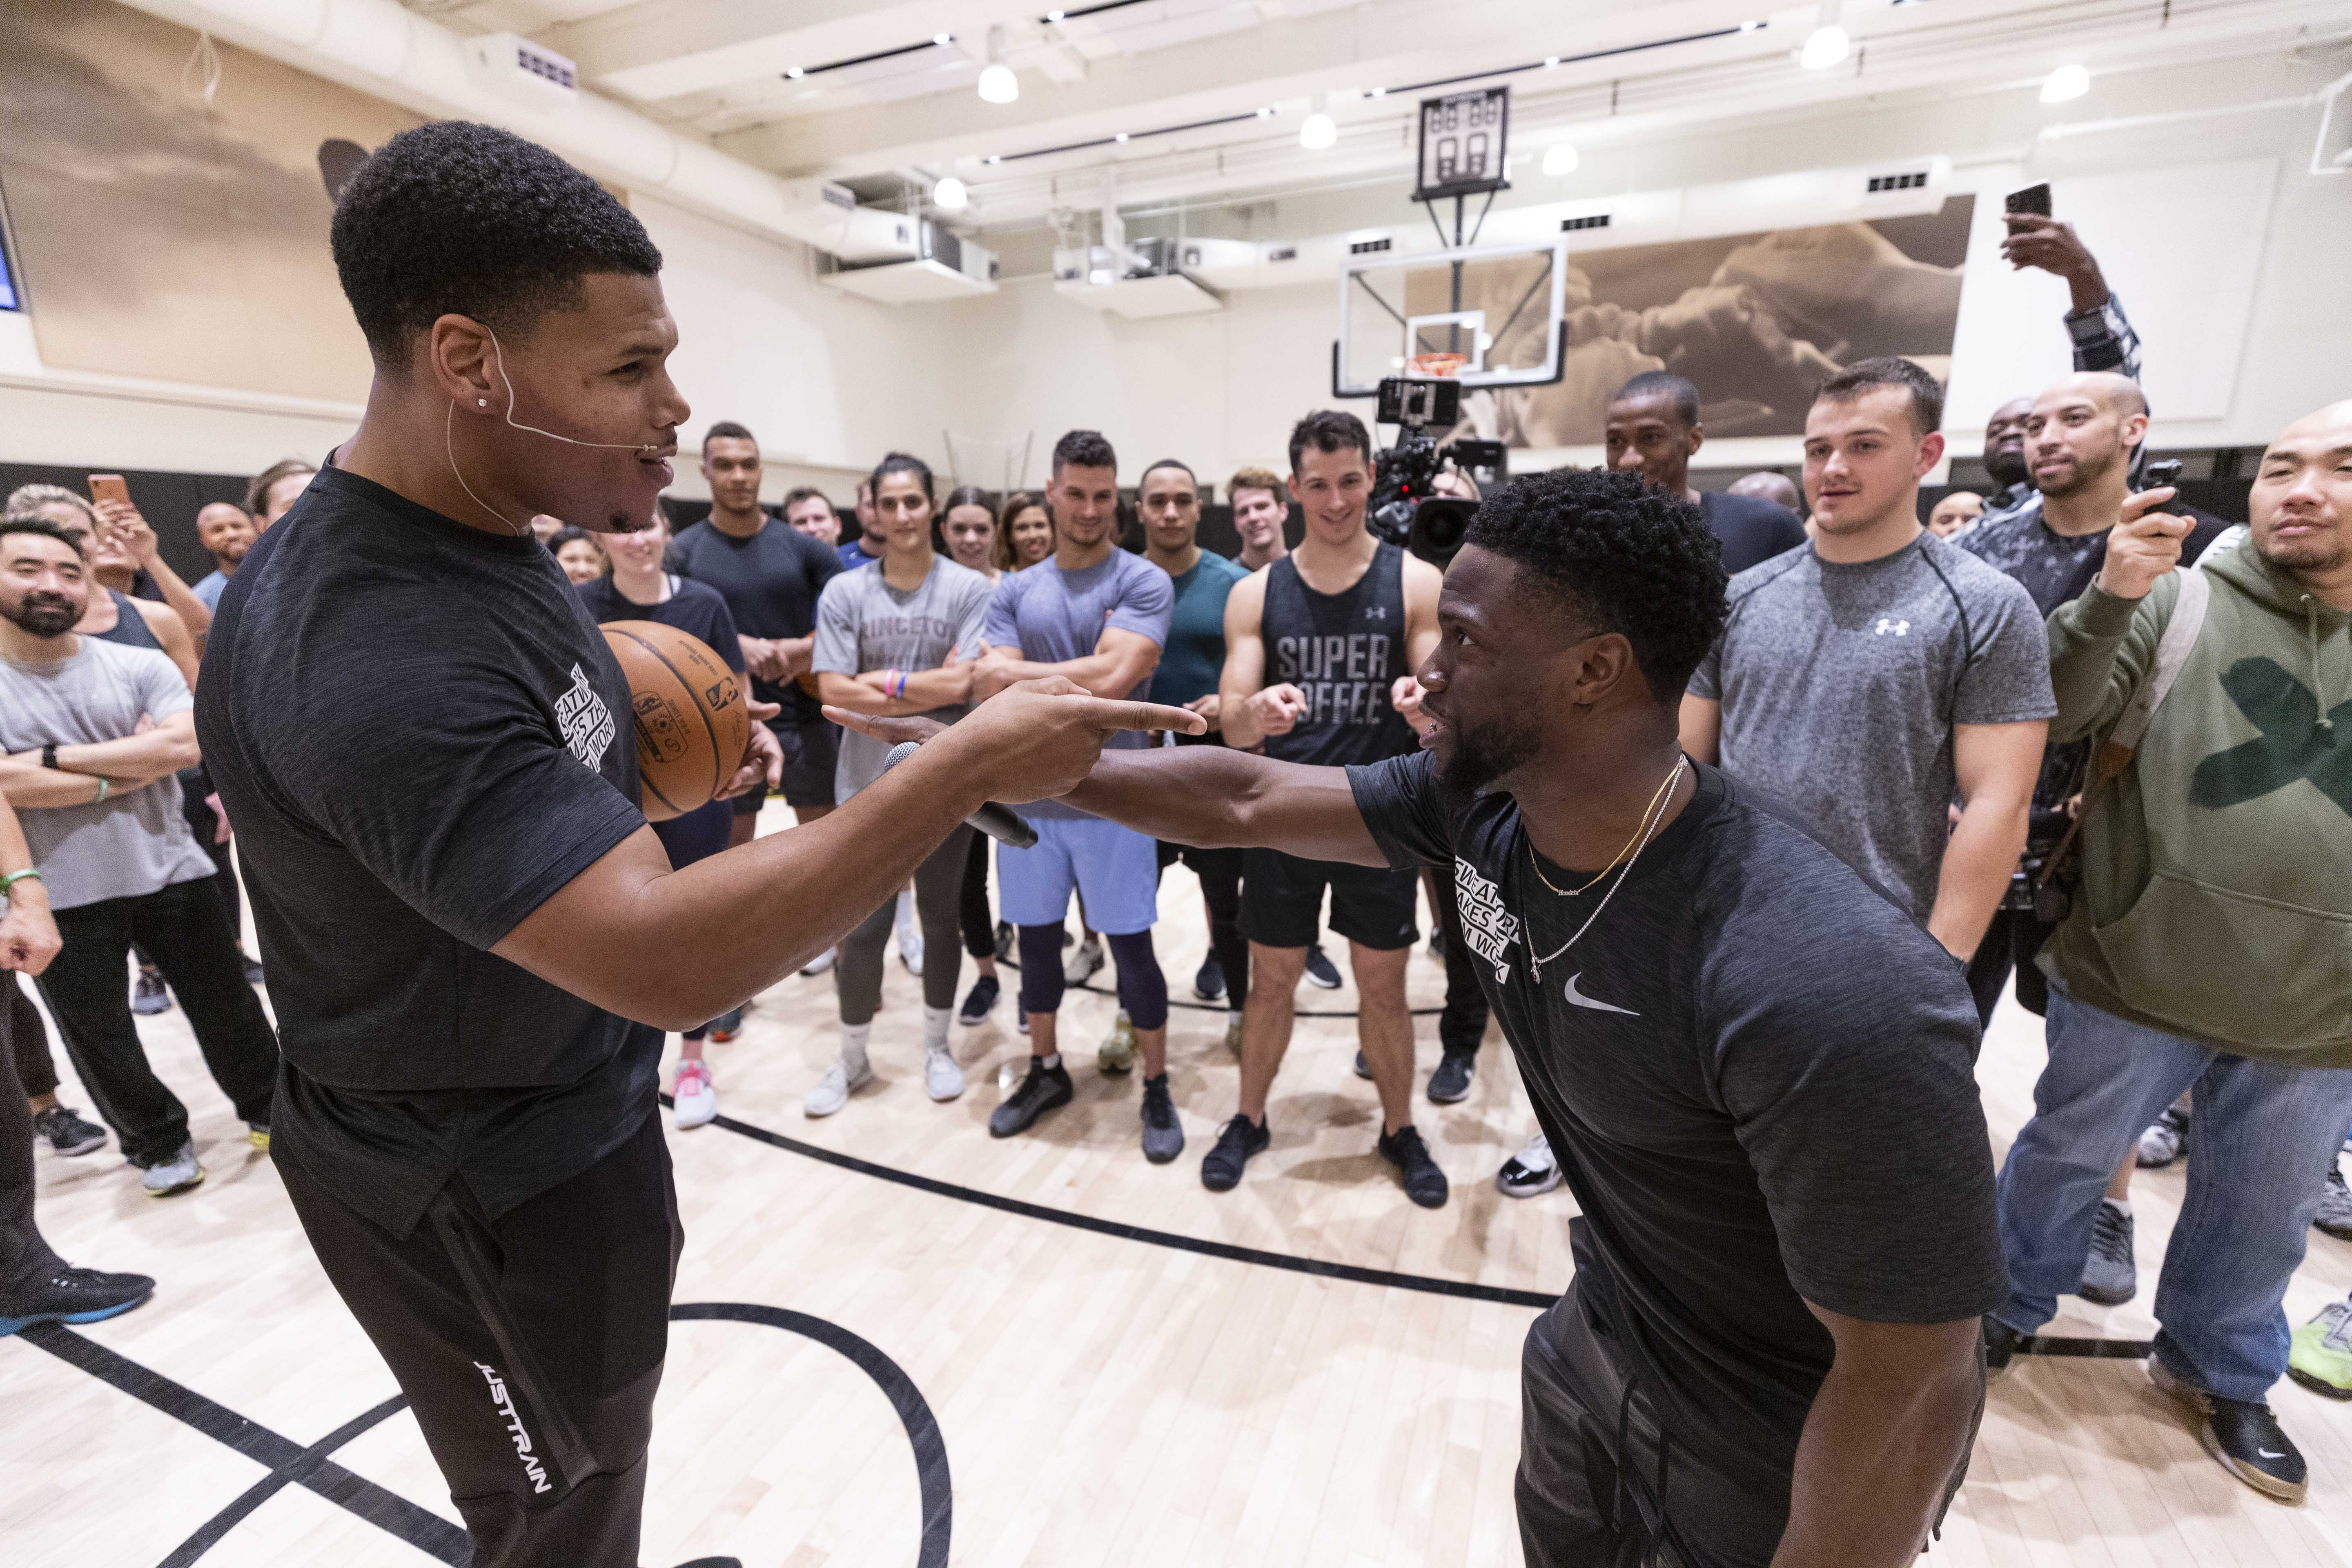 """JP Morgan Chase hosted their """"Sweatworking"""" event at the NBPA, which included a panel discussion featuring Kevin Hart, followed by an H.I.I.T class on court lead by Ron Boss Everline."""